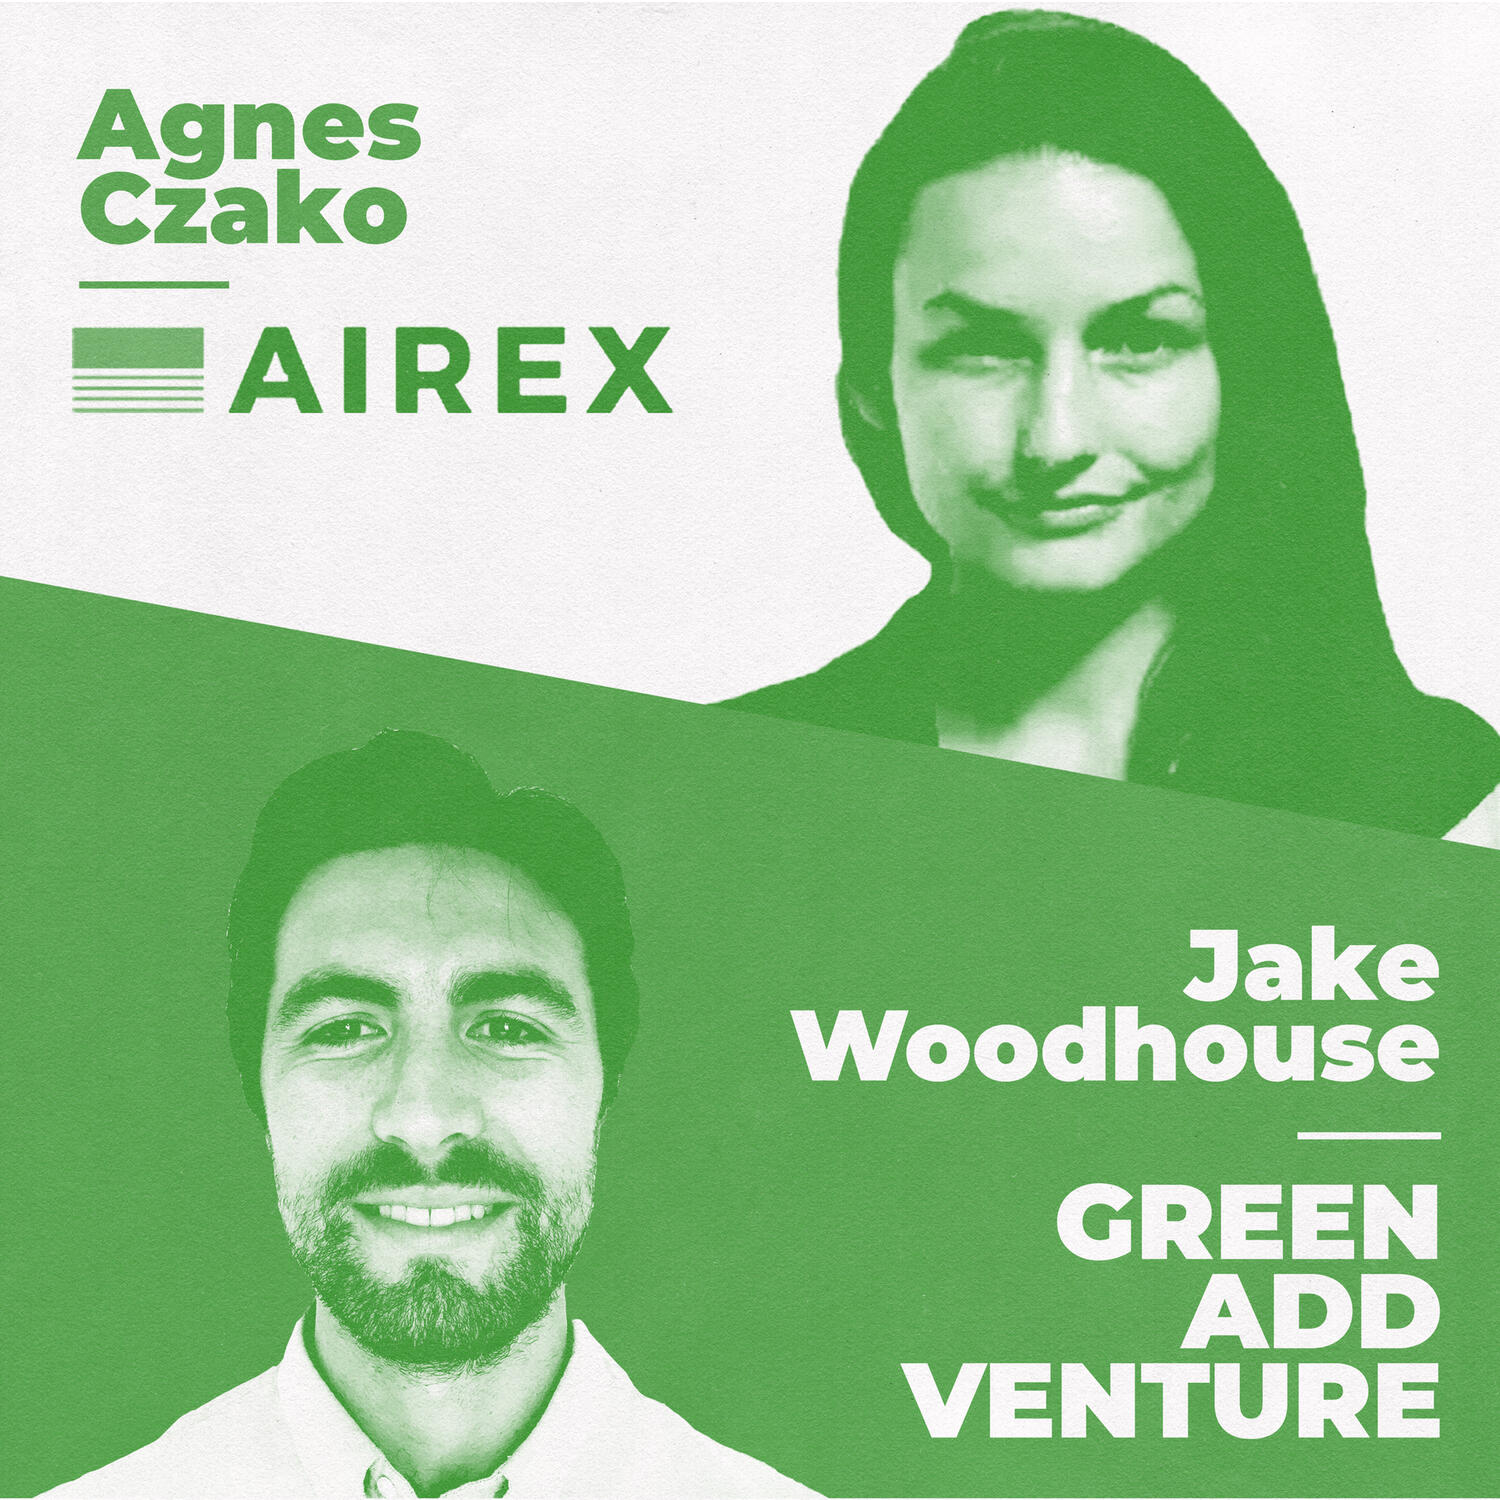 7: Agnes Czako - Airex - Making A Social Impact With Efficient Buildings